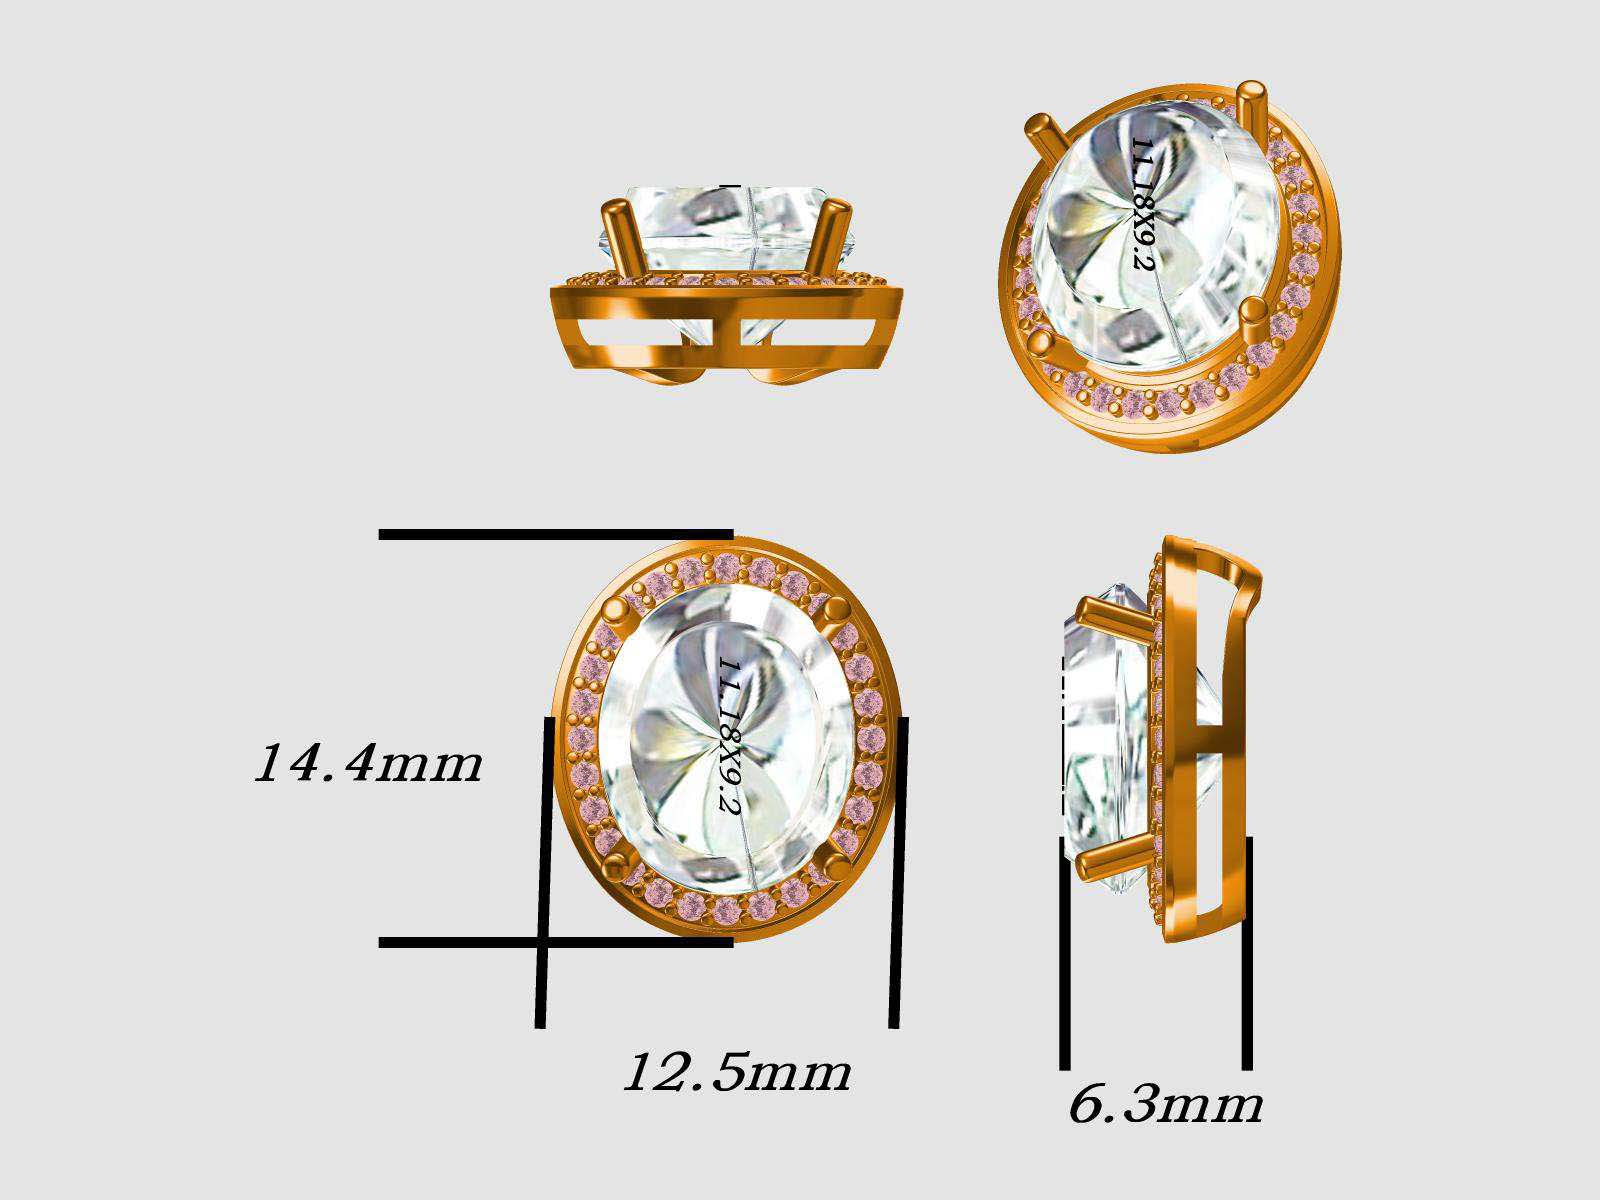 AU0044-kynite pendant rose gold CAD-P00235(粉)-1.jpg